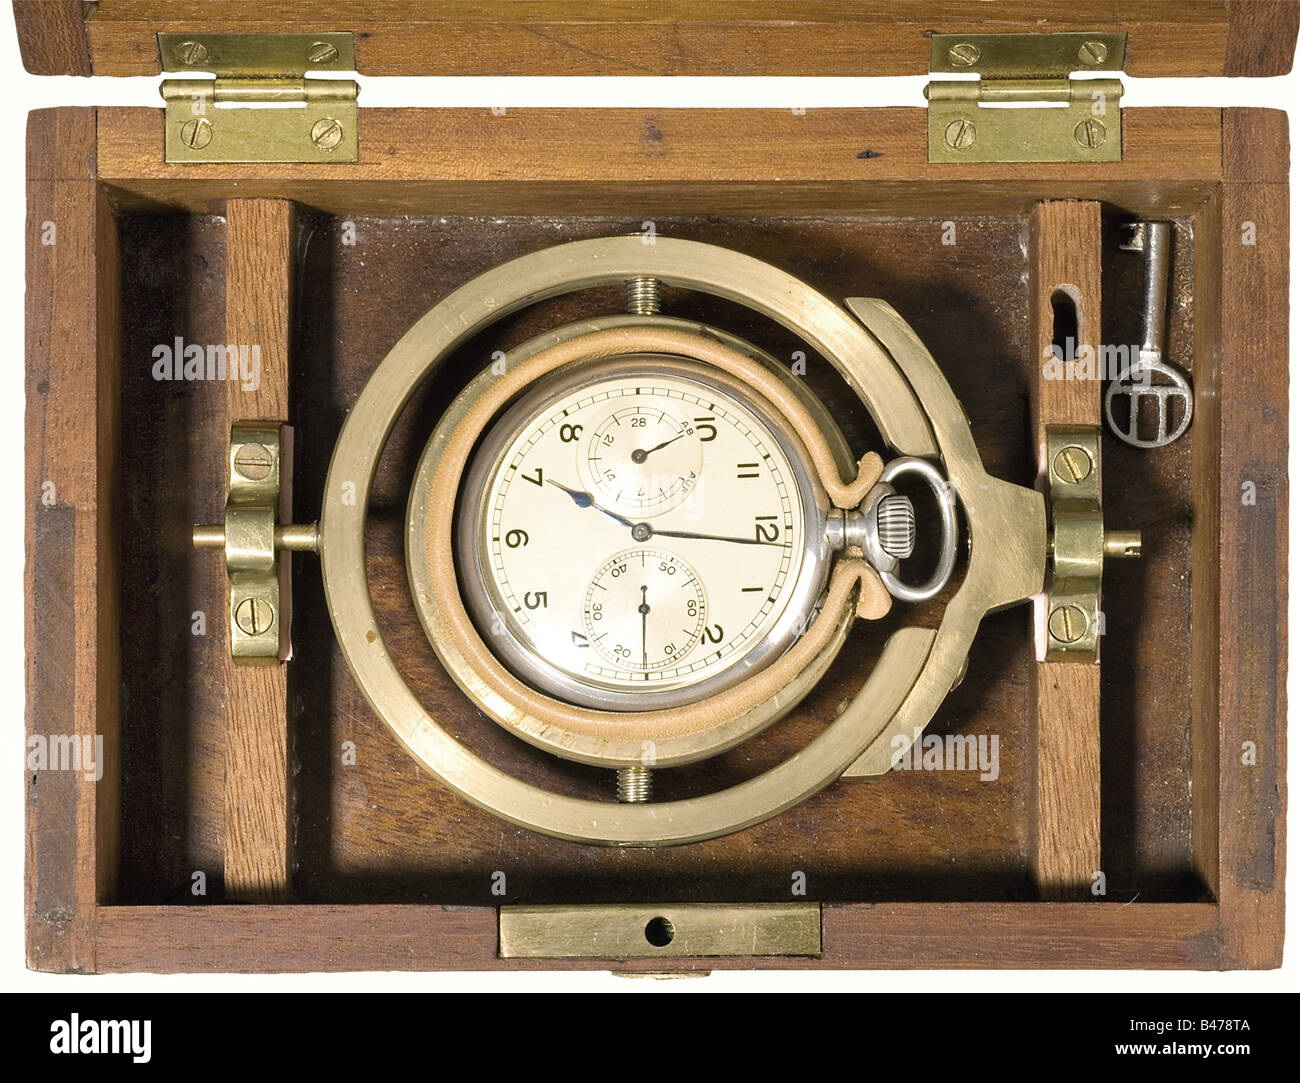 A chronometer, silver case, cal. 48. Silver plated dial, blued hour and minute hands, reserve power indicator, subsidiary - Stock Image